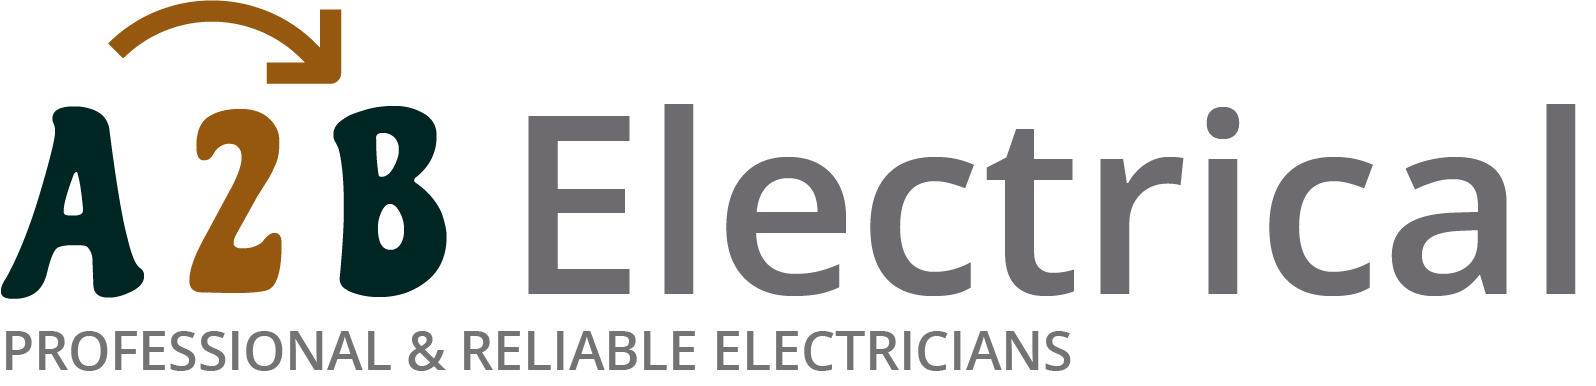 If you have electrical wiring problems in Islington, we can provide an electrician to have a look for you.